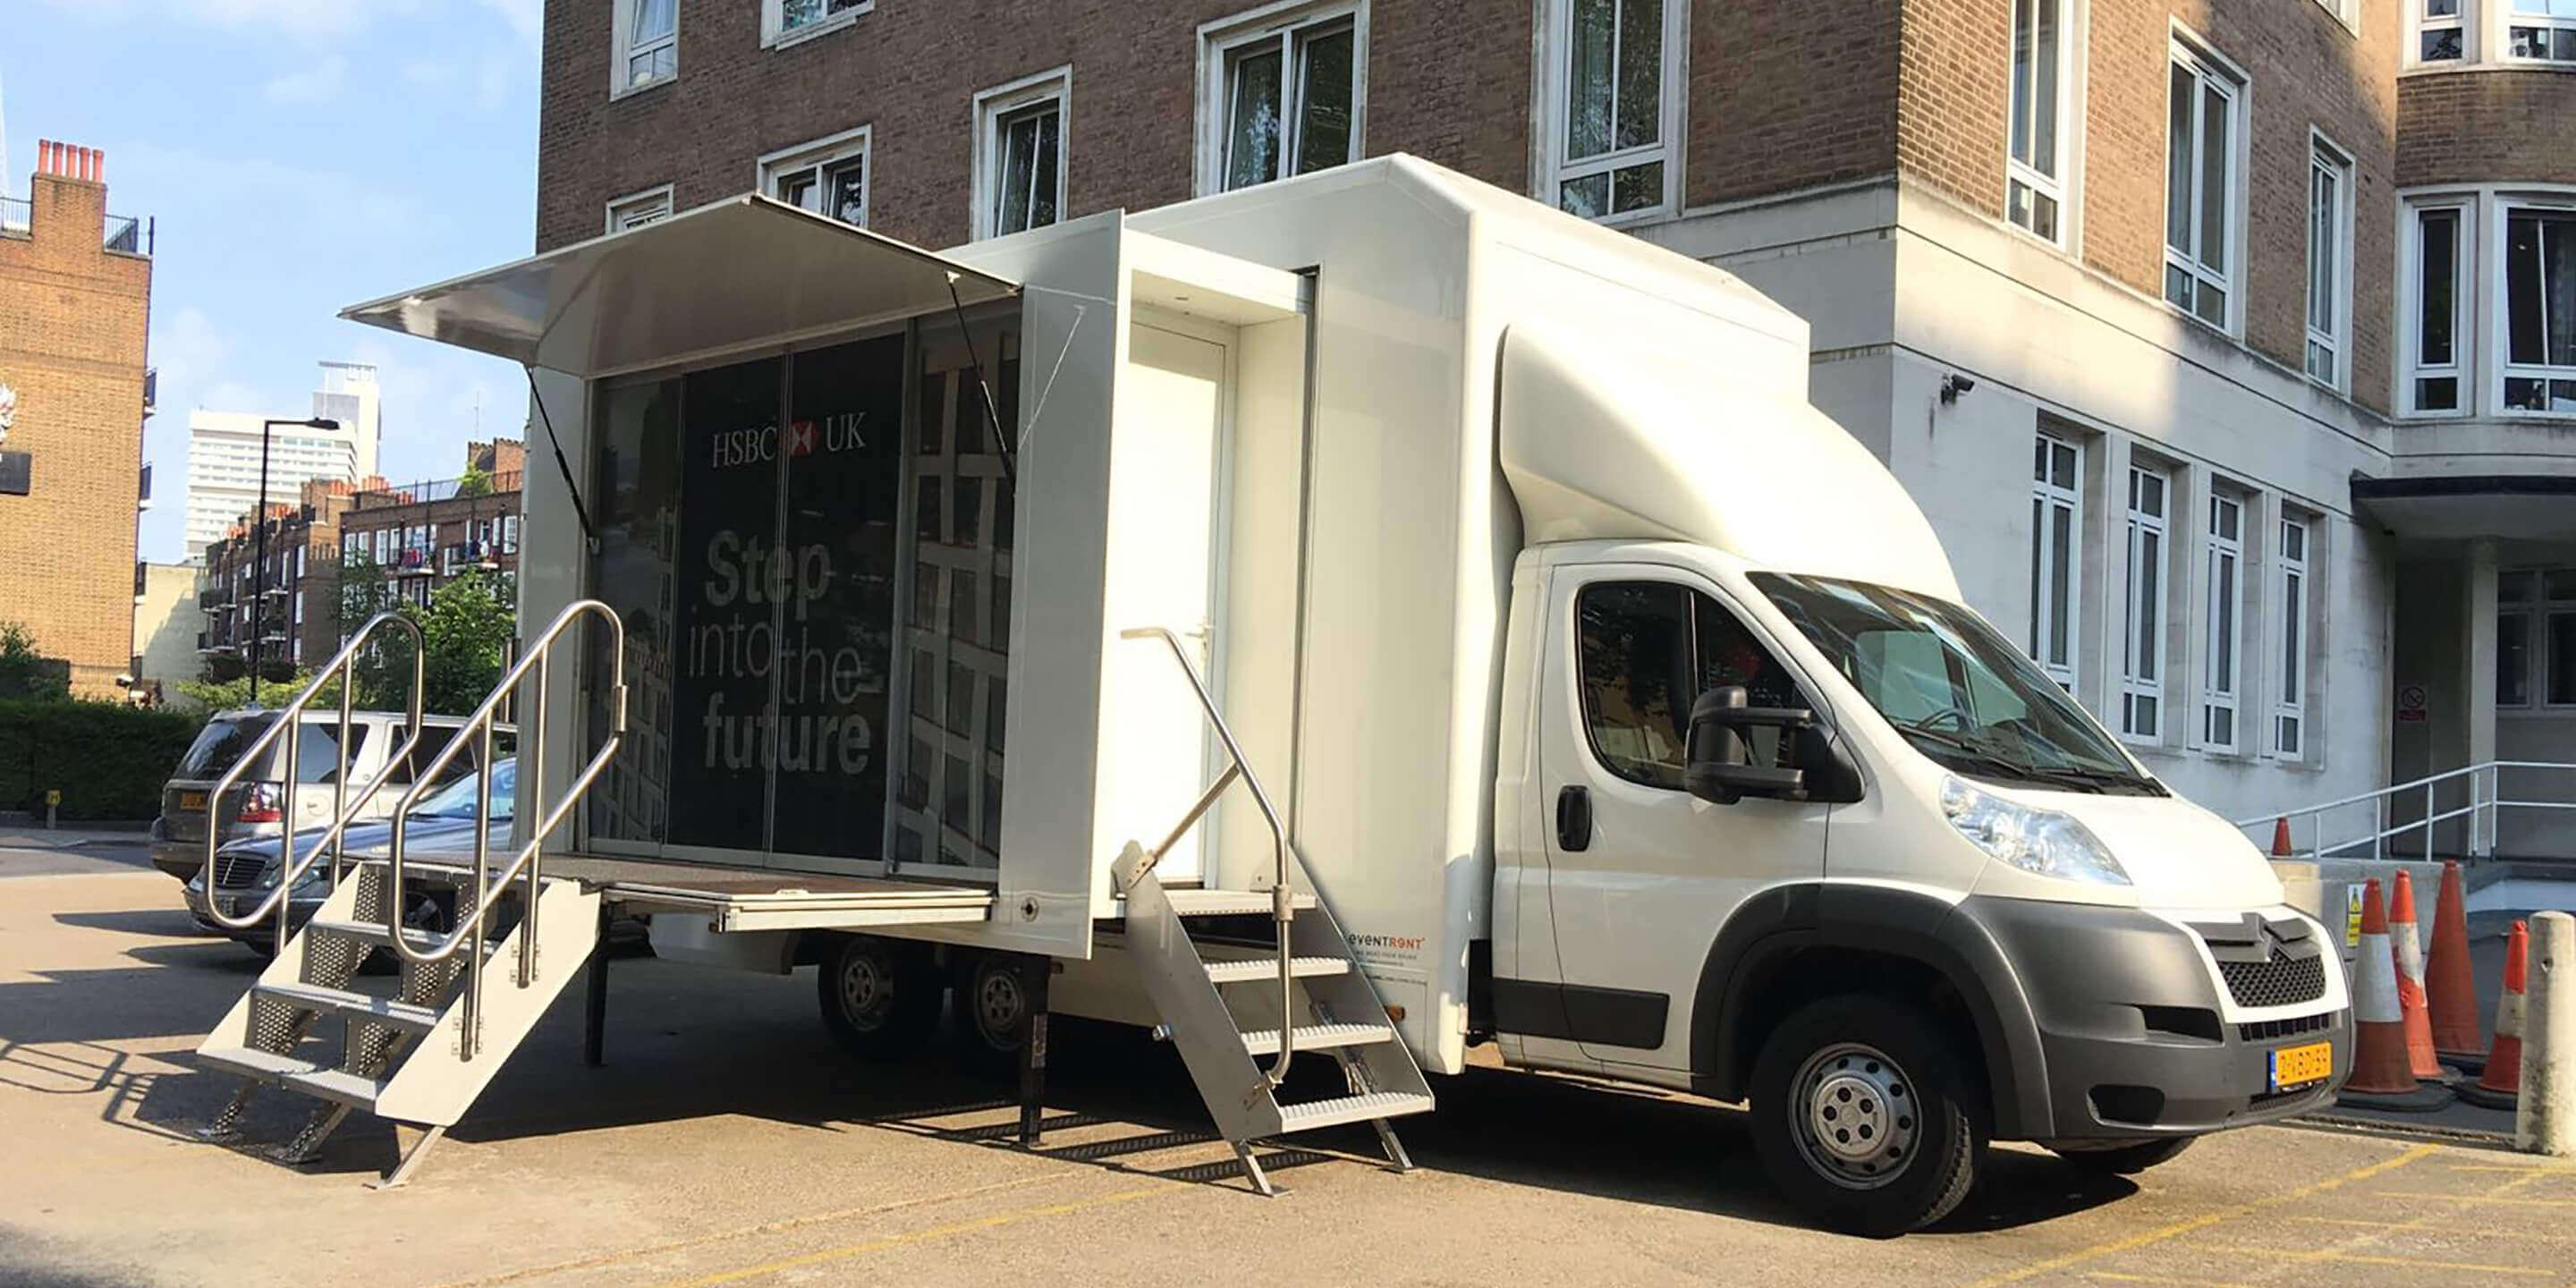 Exhibition Trailers: Relay Promotional Vehicle for HSBC Awareness Tour